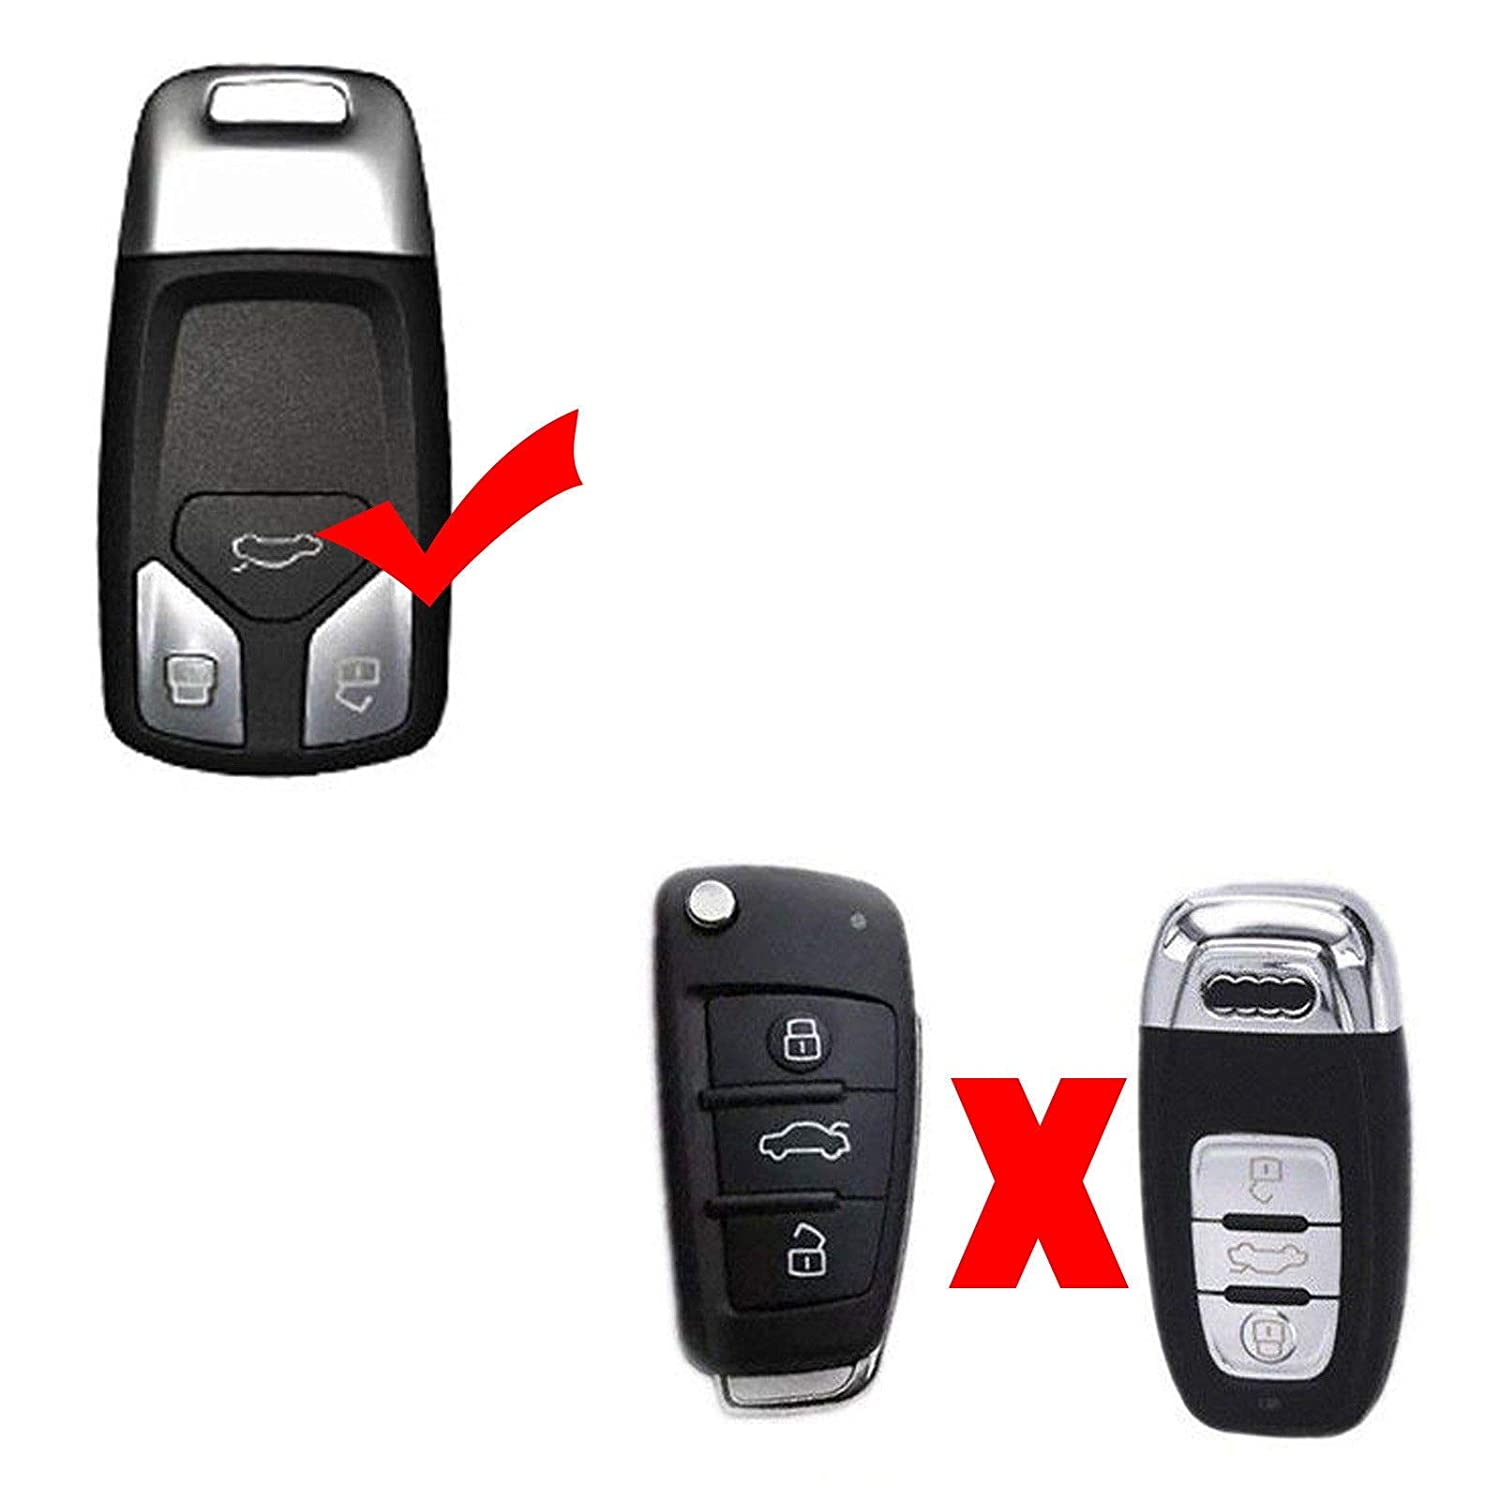 Xotic Tech Carbon Fiber Pattern Key Fob Cover TPU Shell Remote Key Case Protector for Audi A4 TT A5 Q7 2016-up